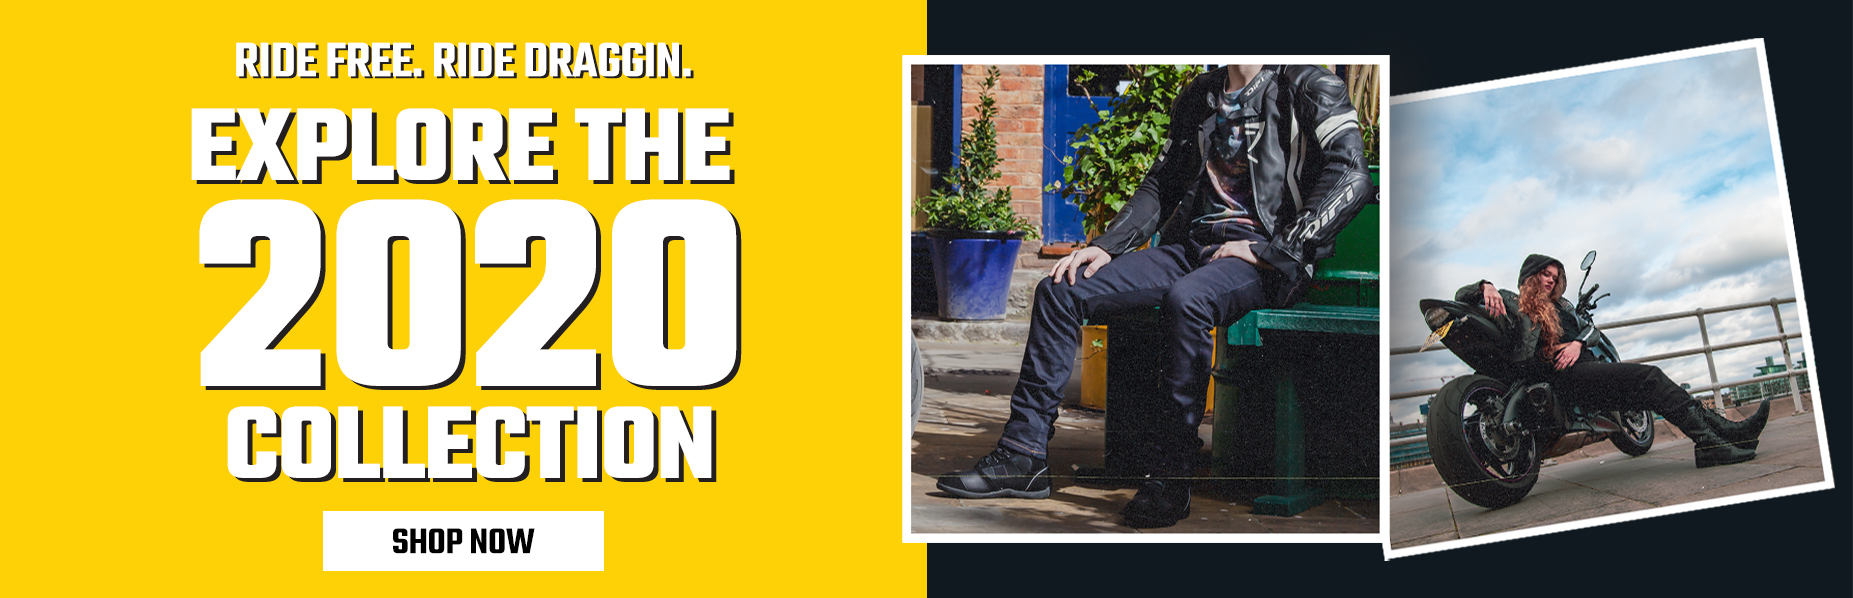 Draggin Jeans UK Homepage | Explore the 2020 Collection